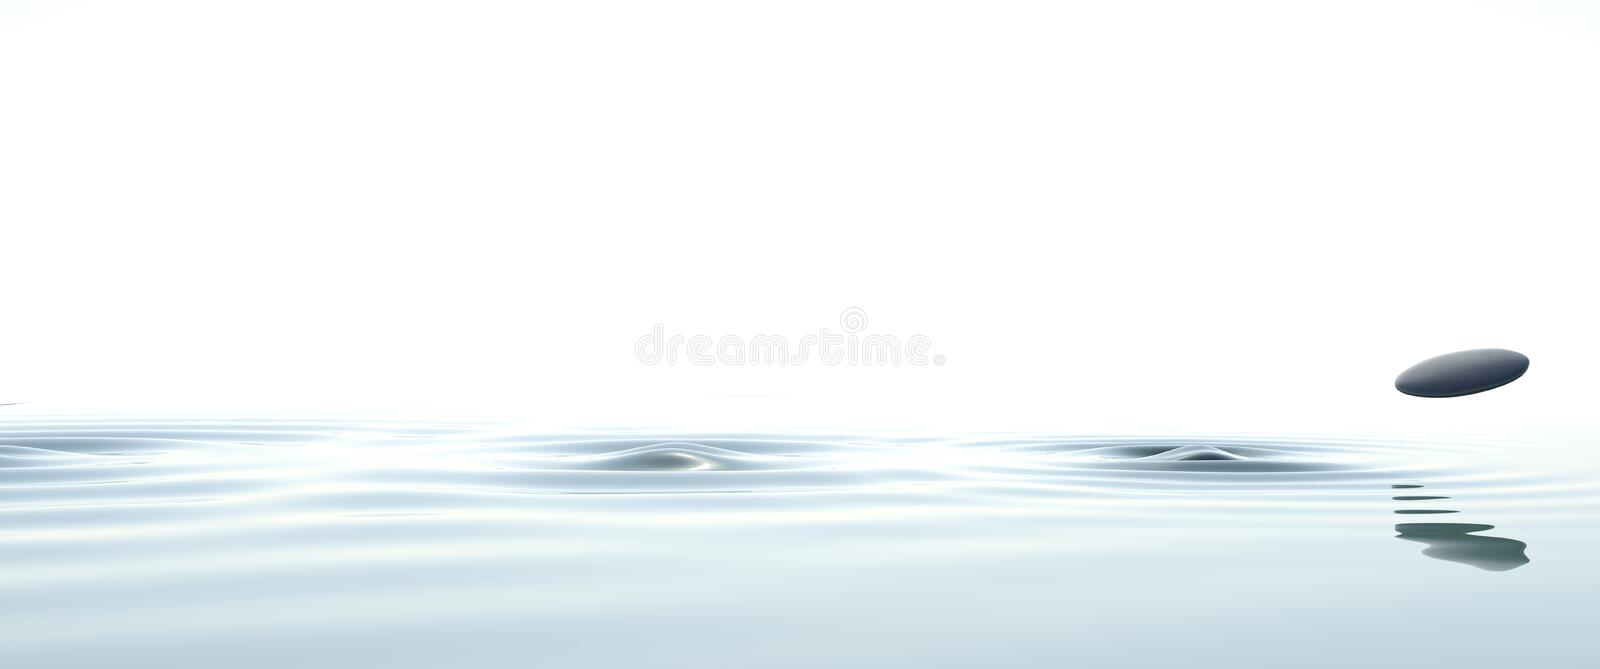 Zen stone thrown on the water widescreen royalty free illustration